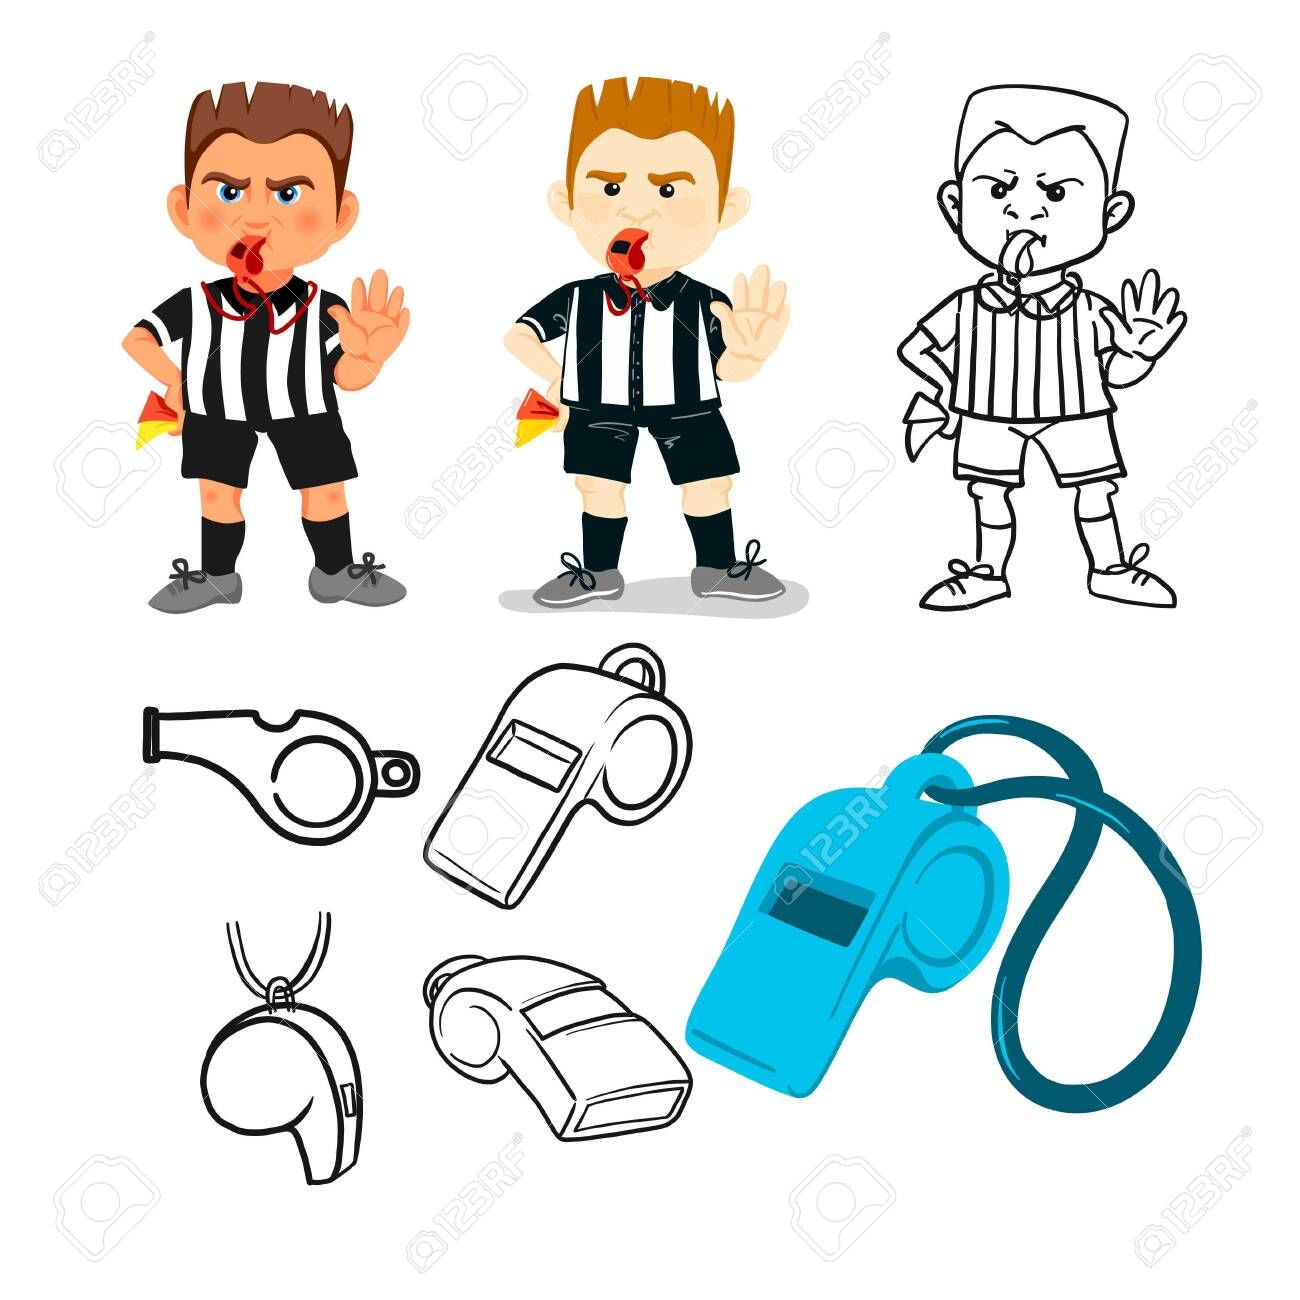 Whistling Soccer Referee Showing Stopping Hand During Match Human Character Vector Illustration Sport Soccer Referee Character Illustration How To Draw Hands